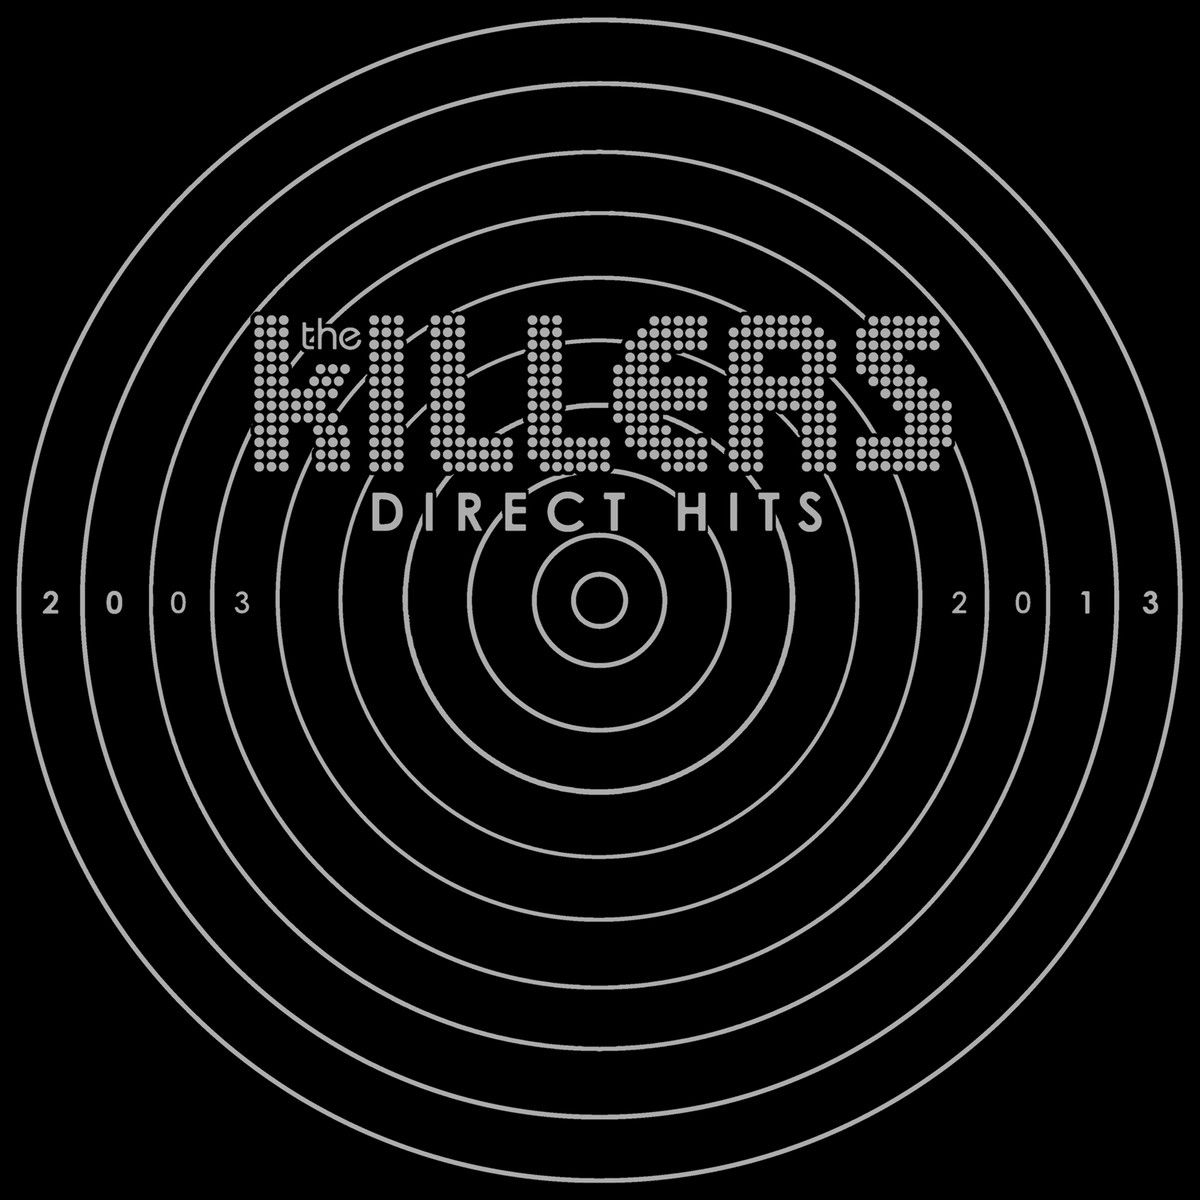 The Killers - Direct Hits album cover